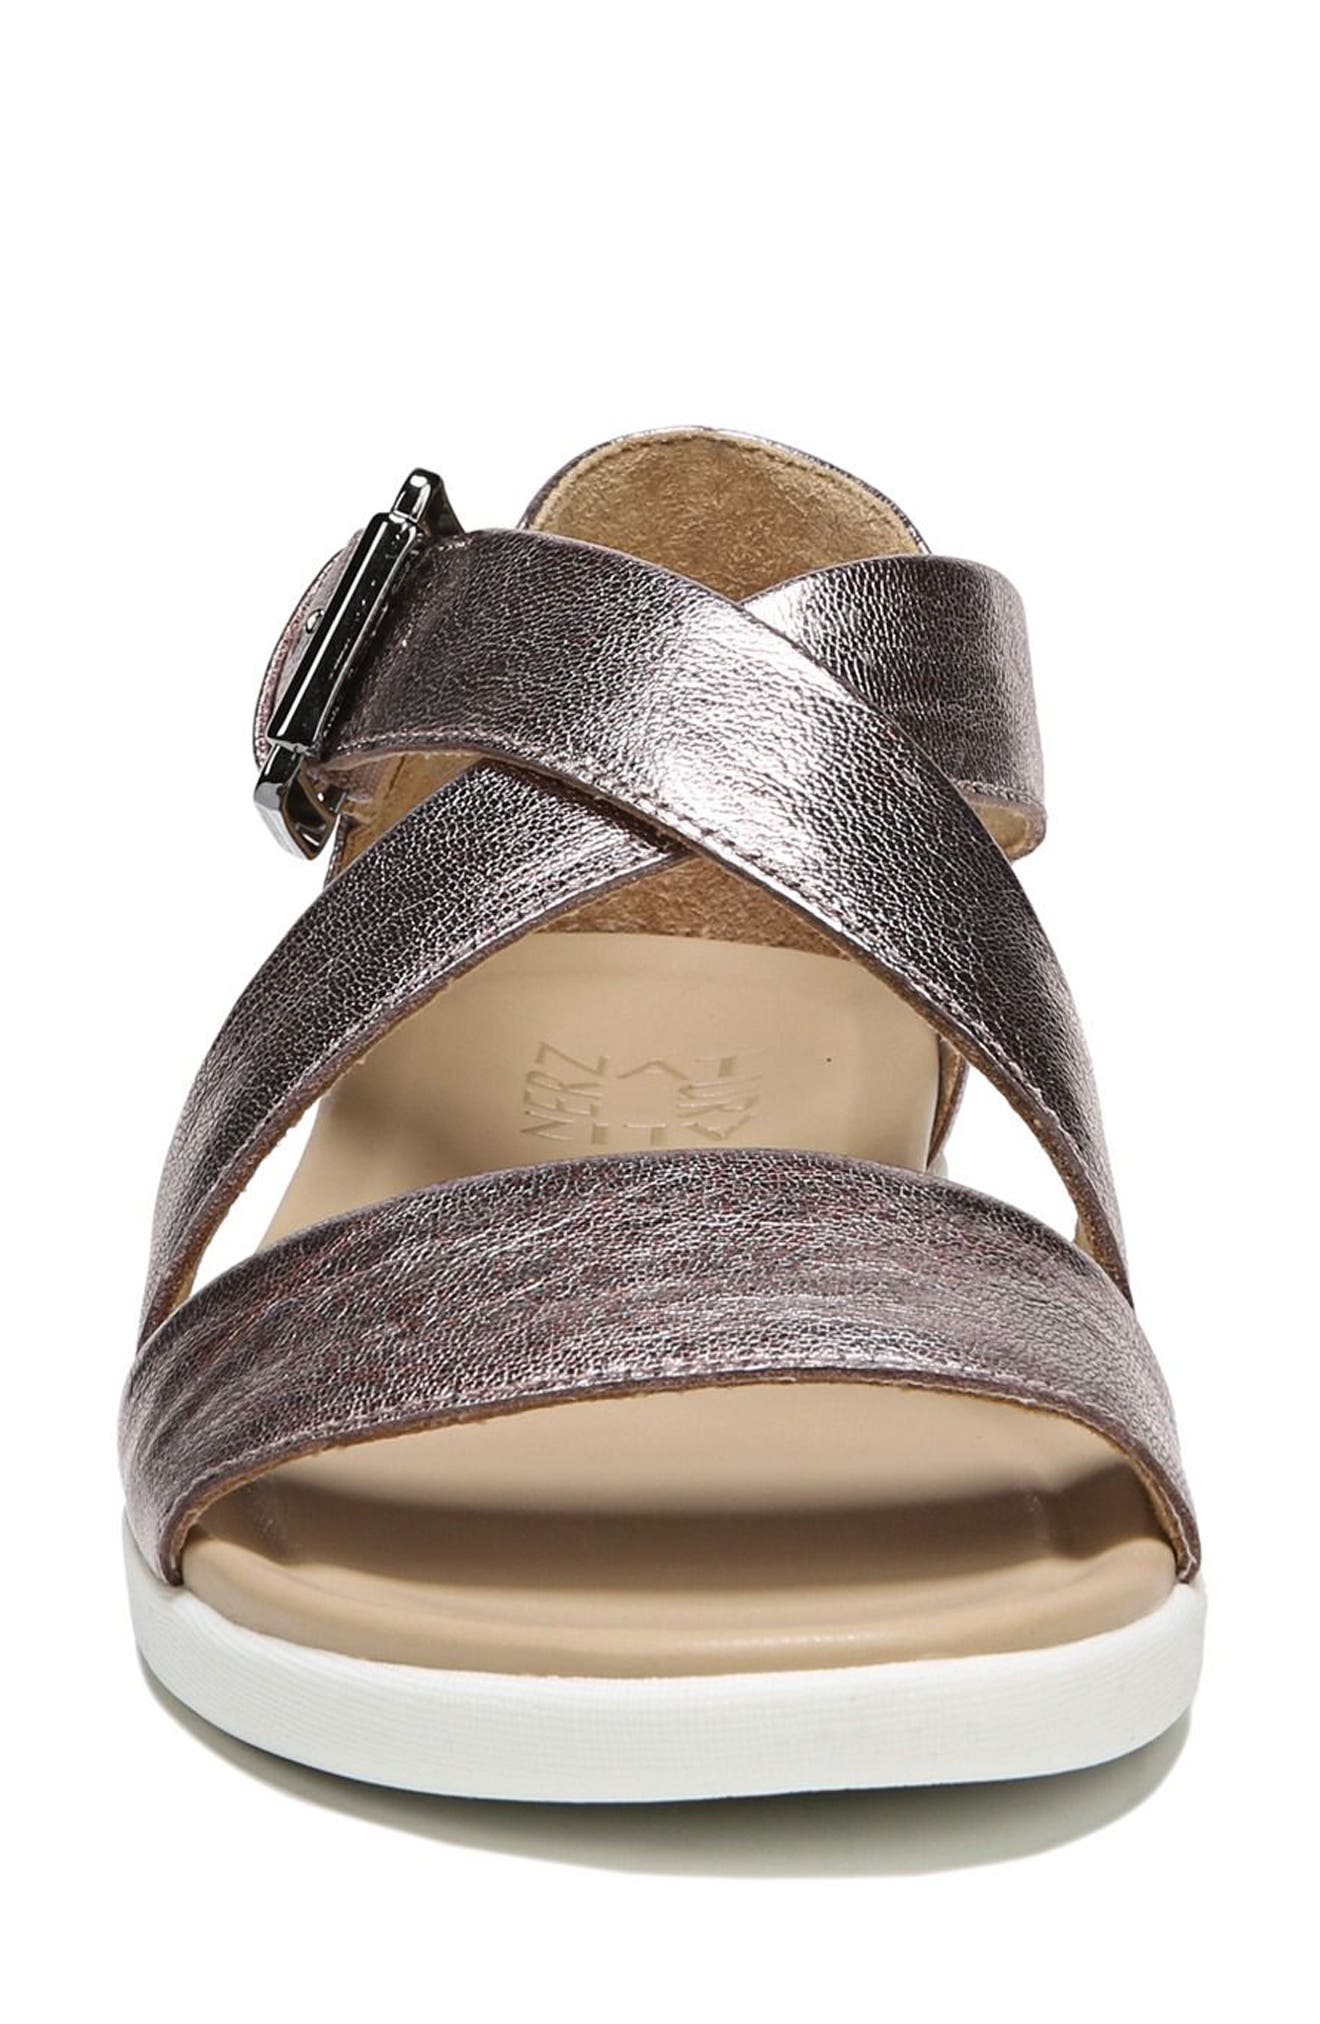 Elliott Sandal,                             Alternate thumbnail 4, color,                             Lilac Leather